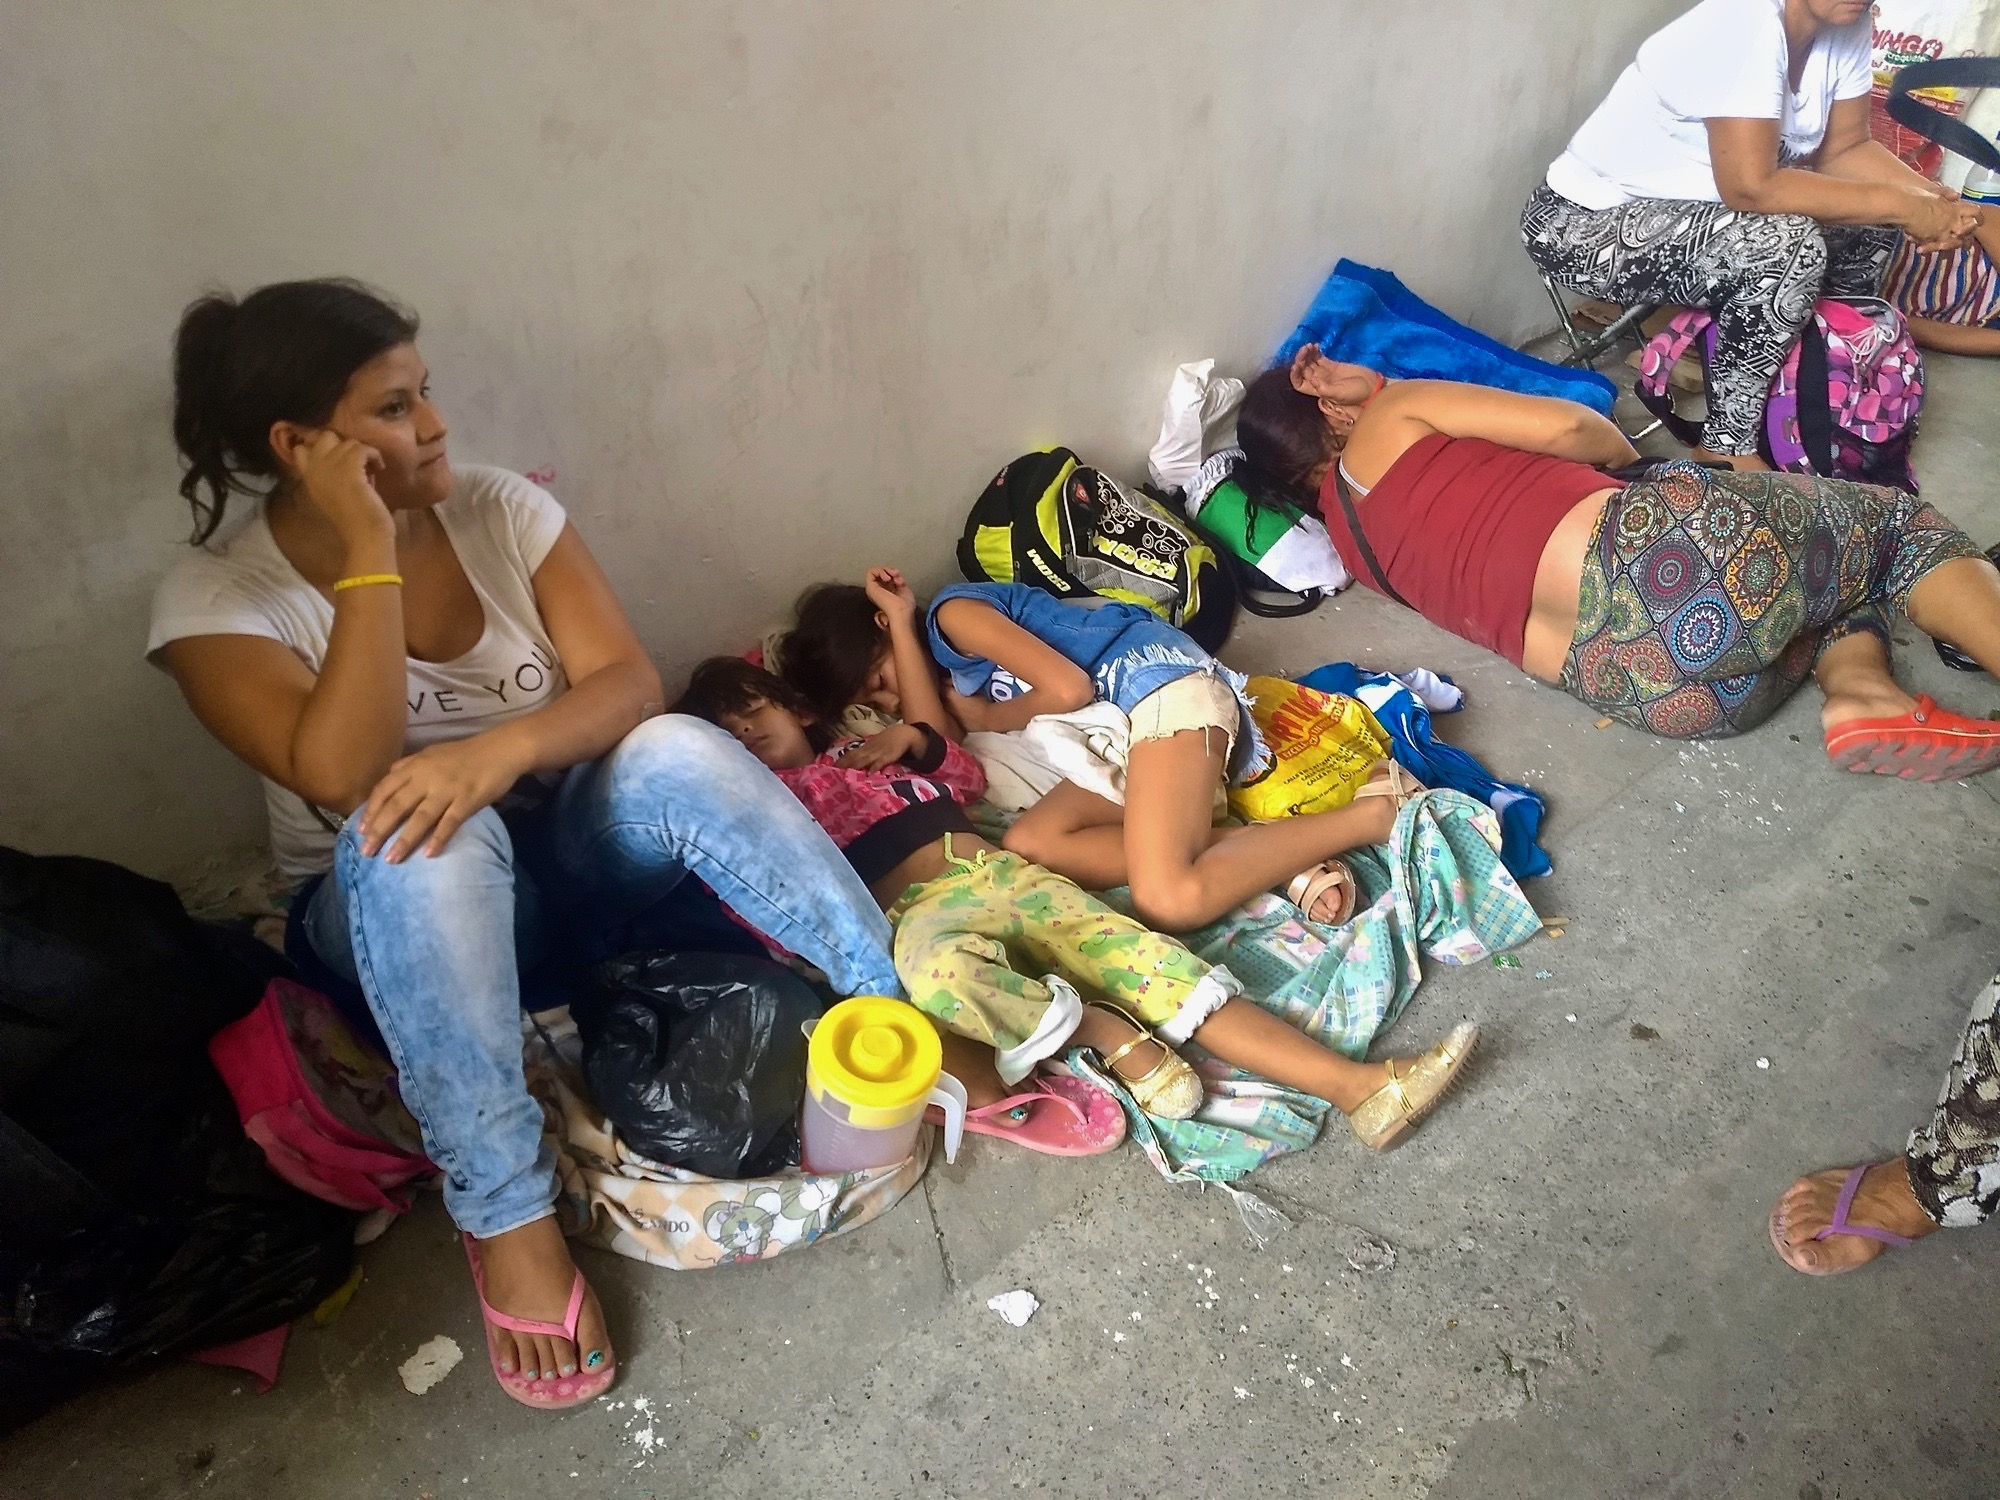 colombia_venezuela_migrants